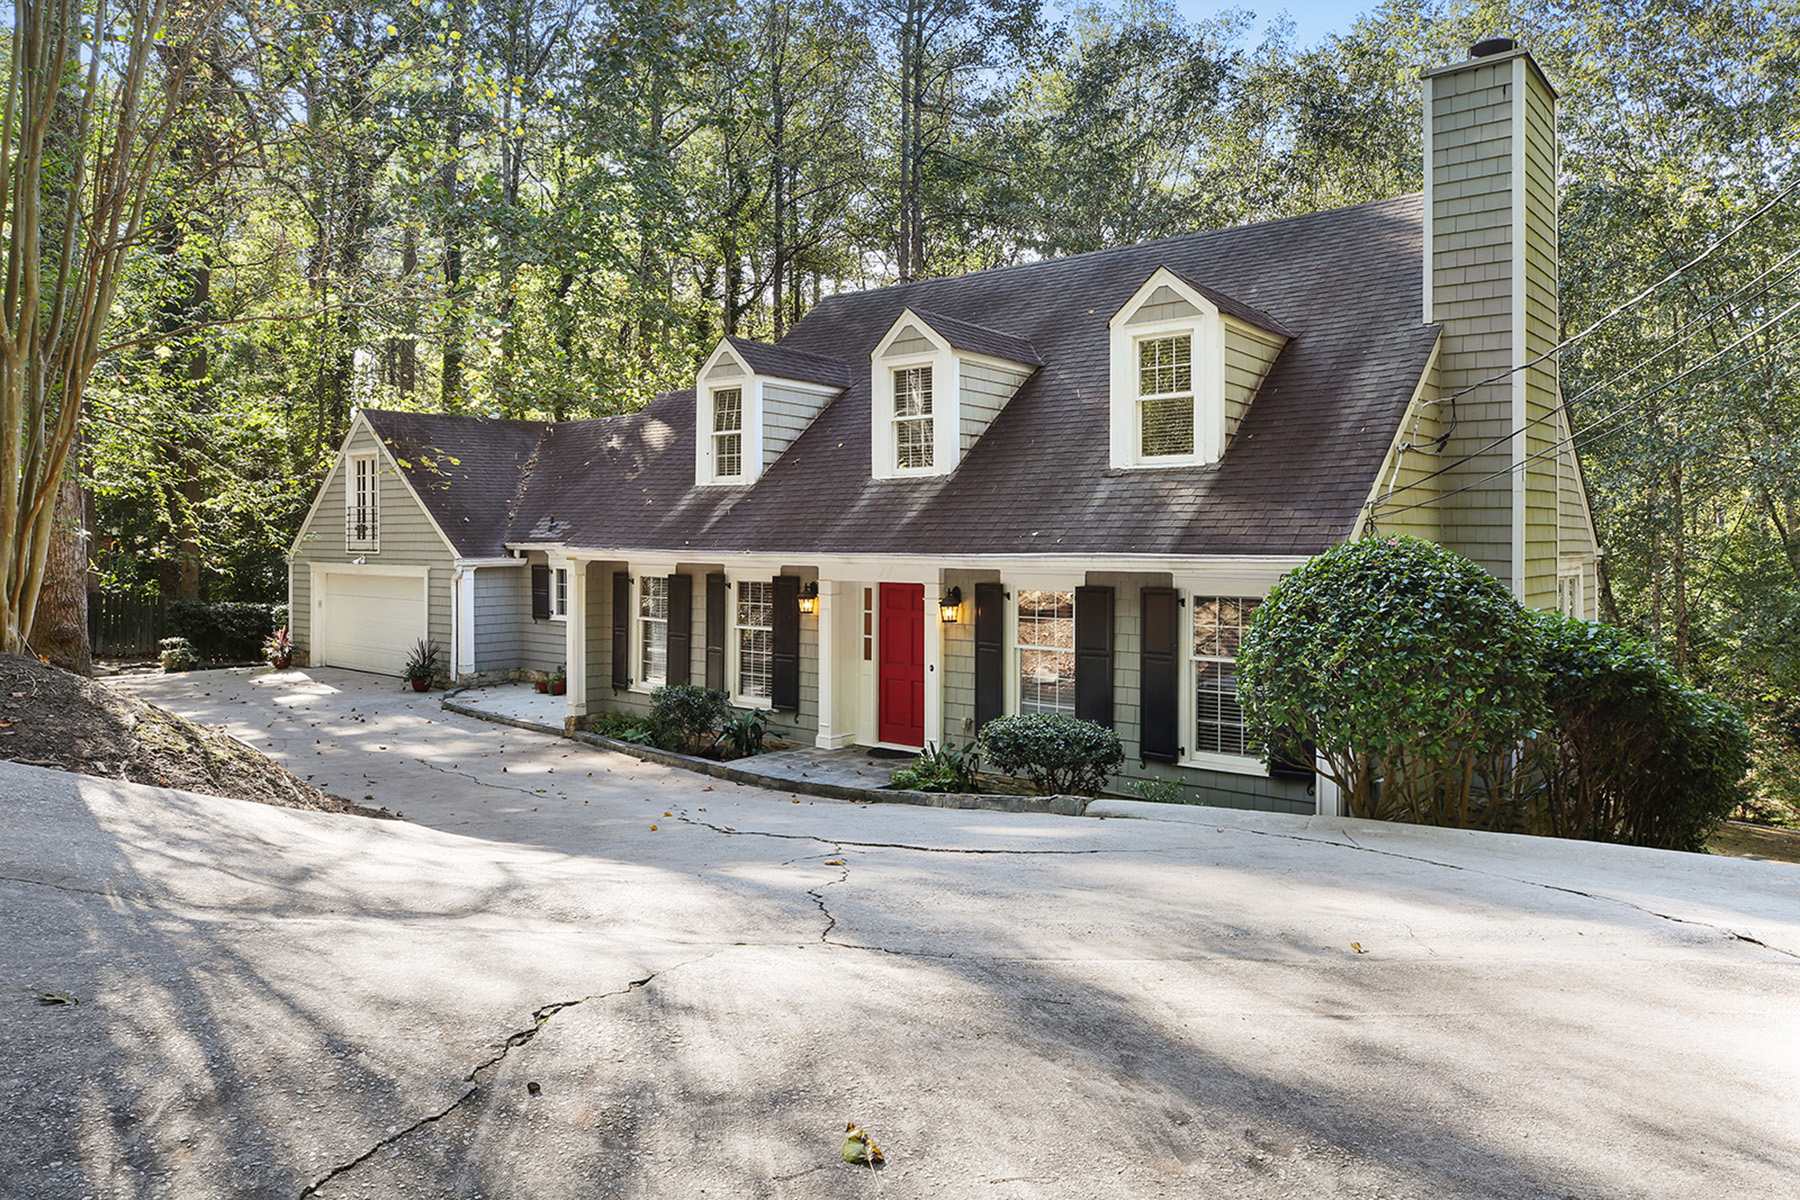 Single Family Home for Sale at Cape Cod Living In The Heart Of Buckhead 1183 Dawn View Lane Atlanta, Georgia 30327 United States